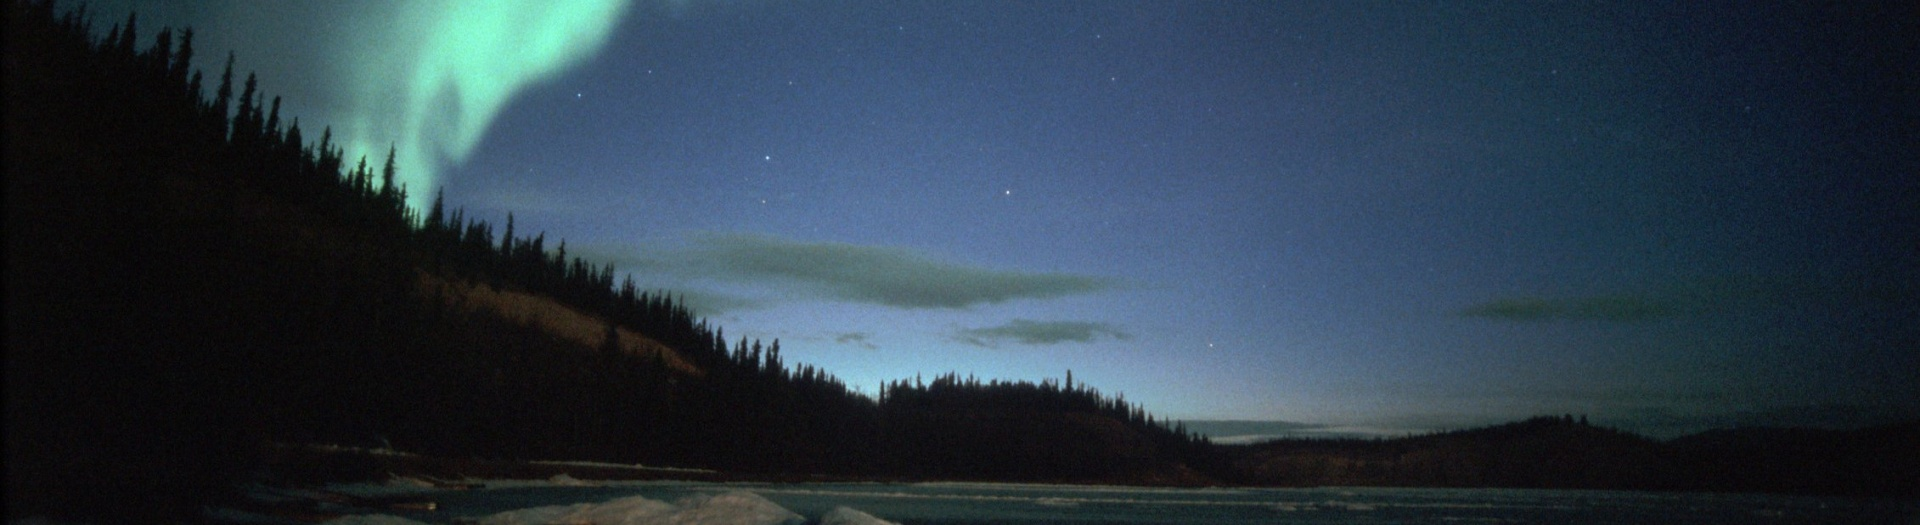 Adventure and Northern Lights in Yukon